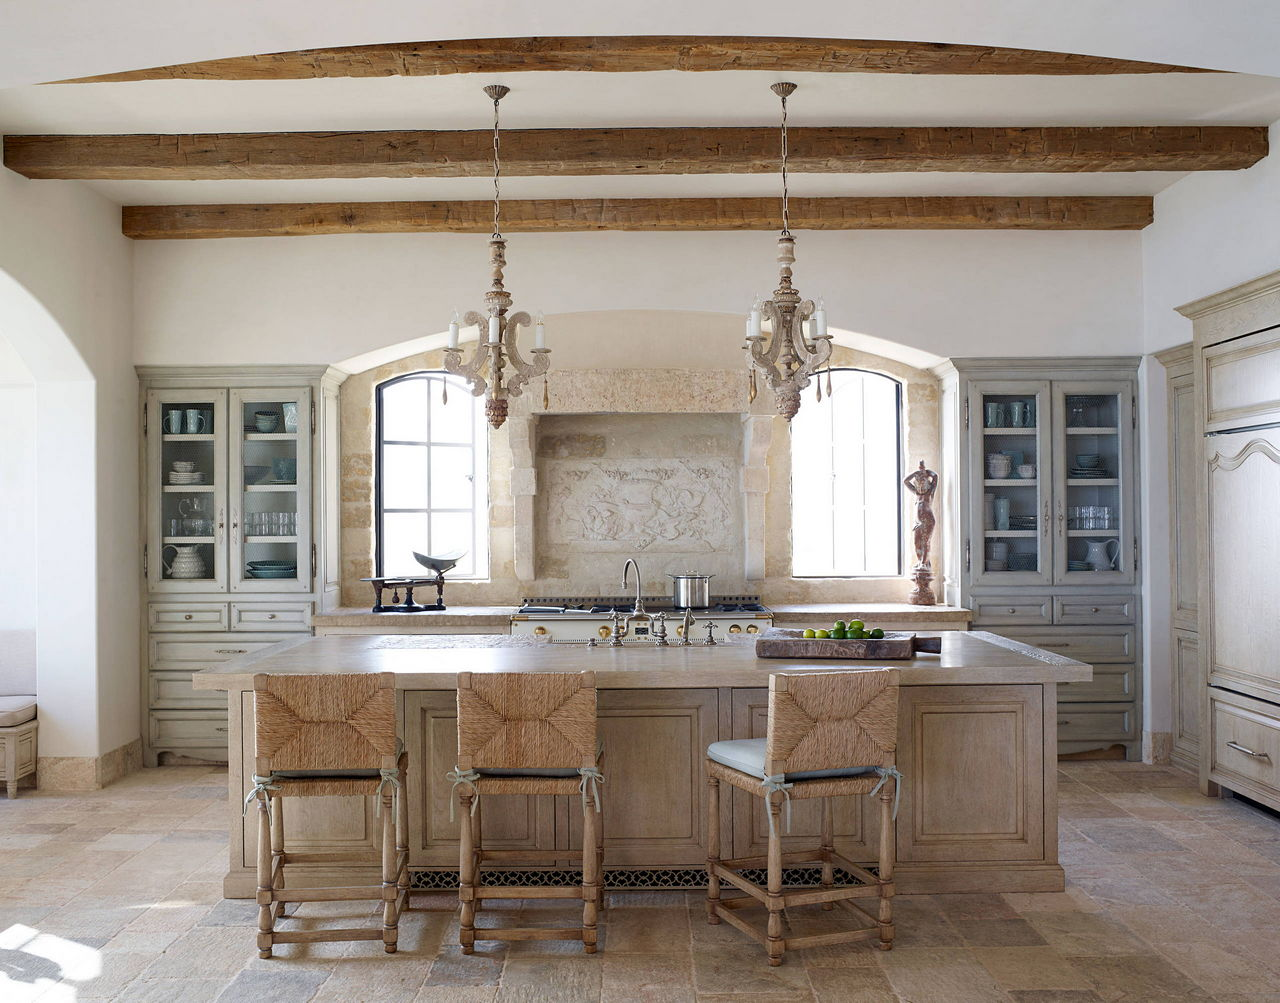 Provence looking spacious kitchen in pastel color palette